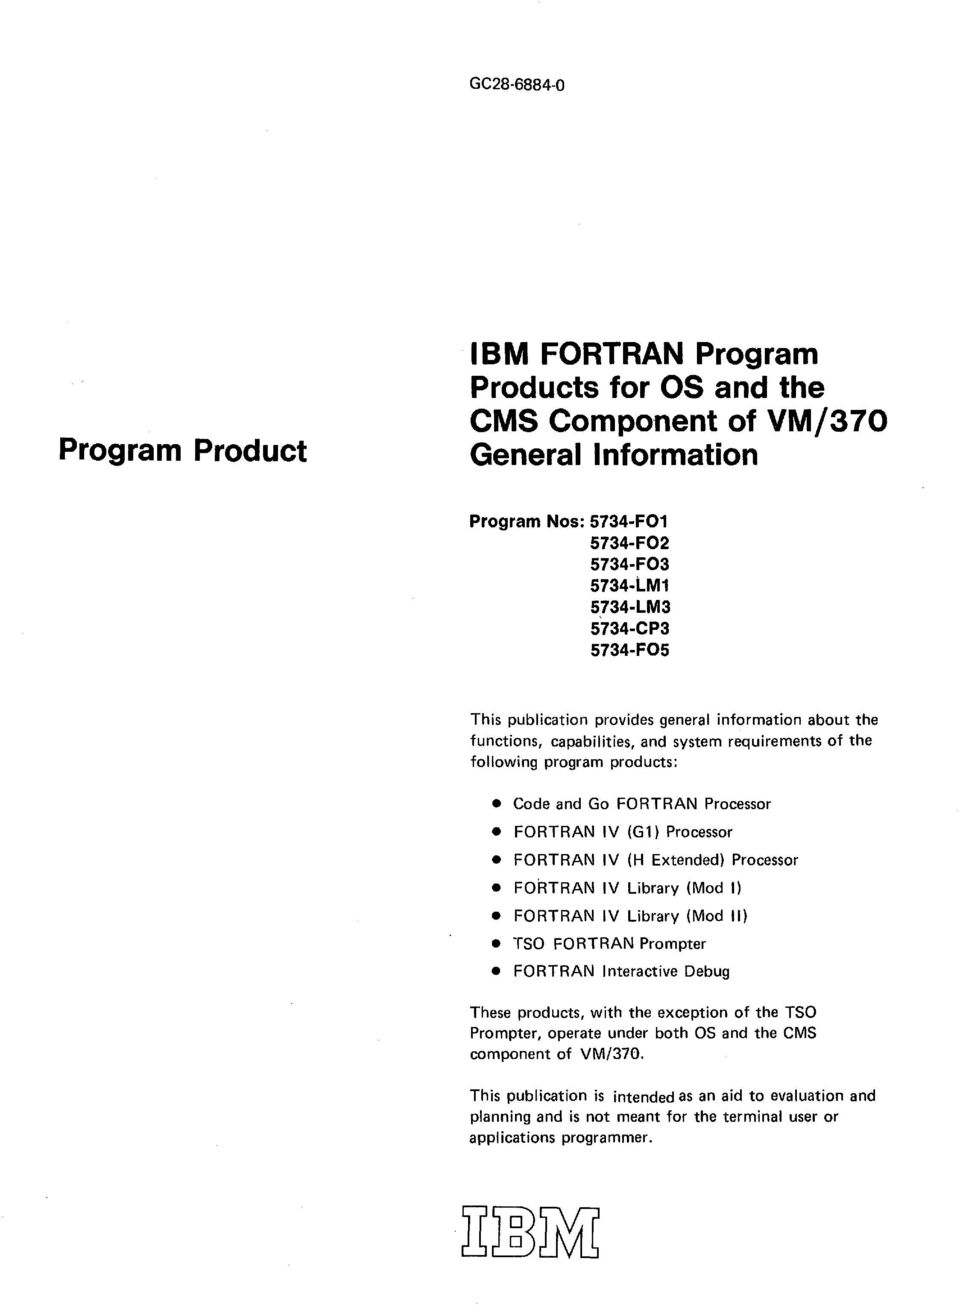 Processor FORTRAN IV (H Extended) Processor FORTRAN IV Library (Mod I) FORTRAN IV Library (Mod II) TSO FORTRAN Prompter FORTRAN Interactive Debug These products, with the exception of the TSO